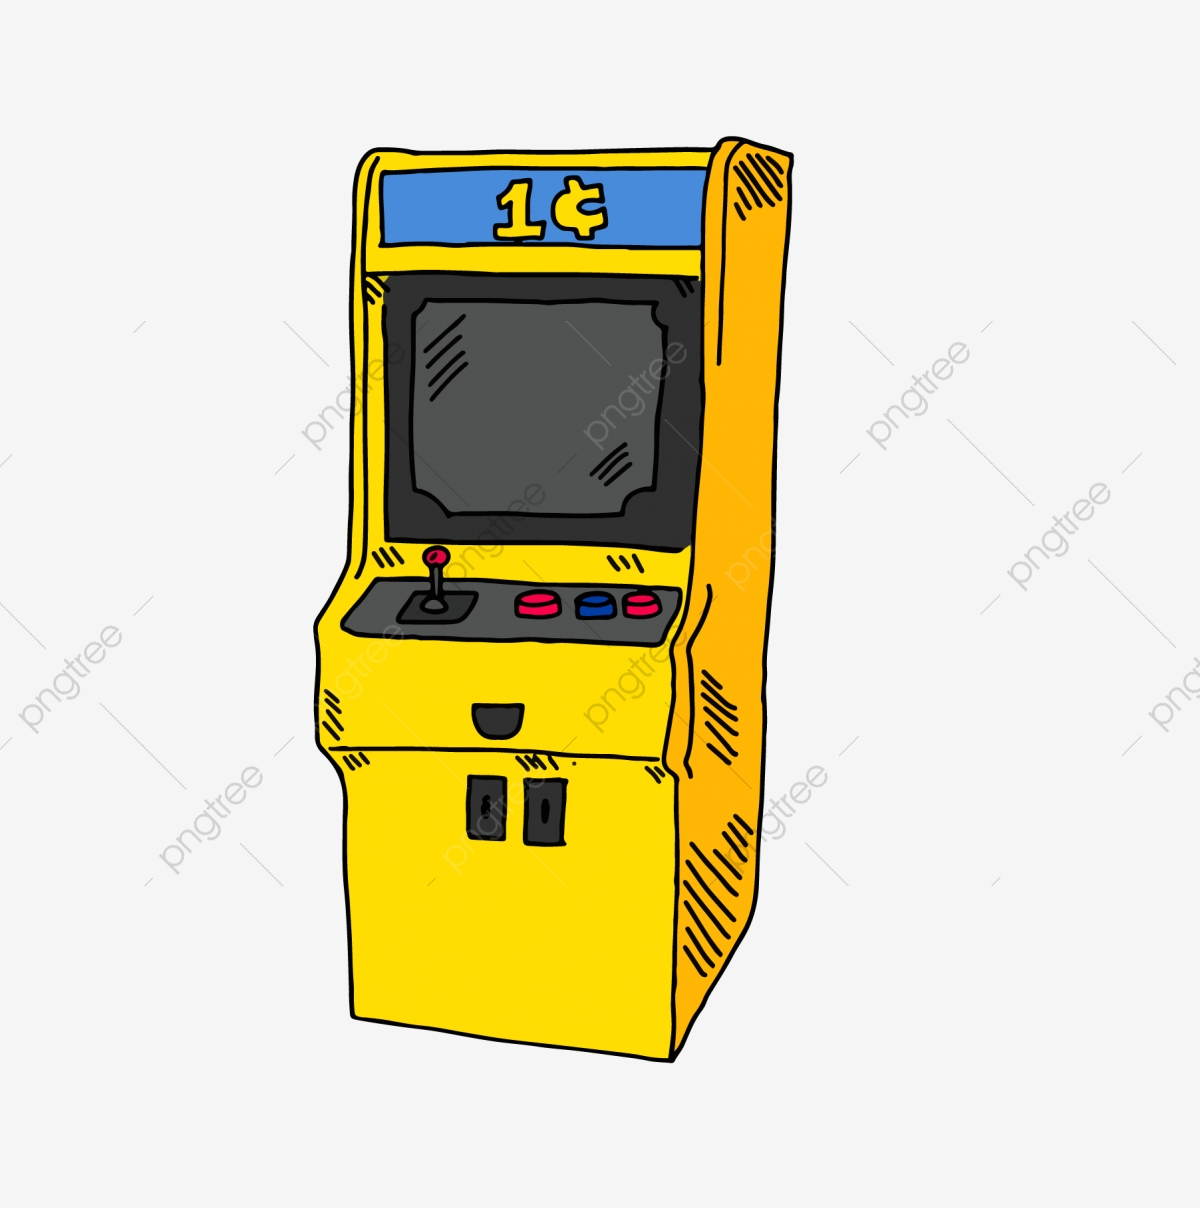 Arcade clipart game console, Arcade game console Transparent.